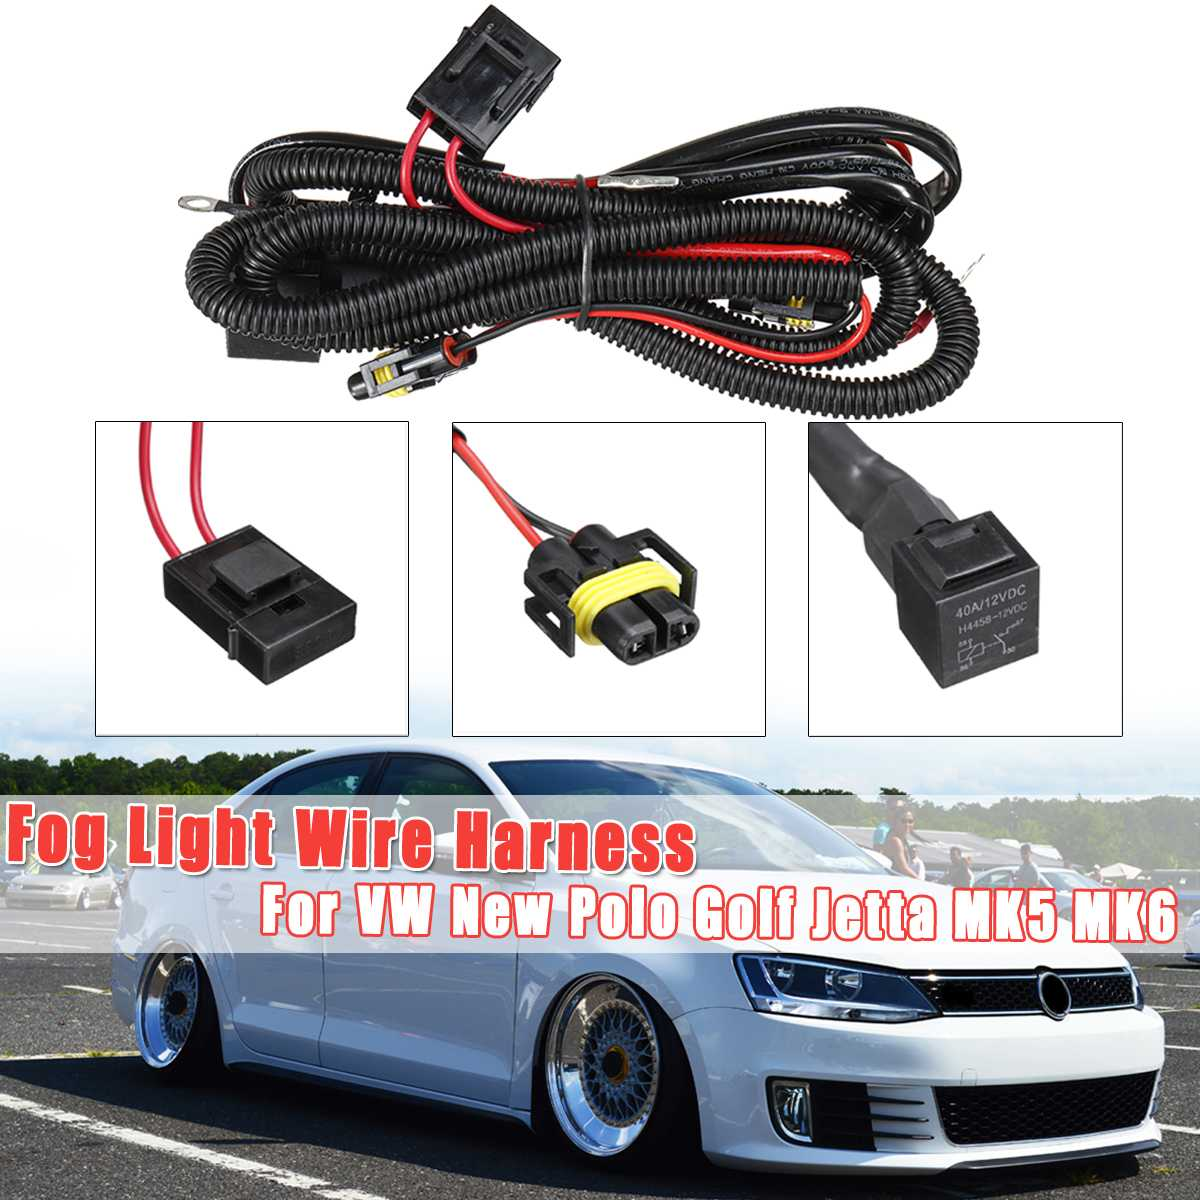 1piece 40V 12A Fog Light Lamp Wires Harness Cable With Fuse Universal For VW New Polo Golf Jetta MK5 MK6 Without Fog Light